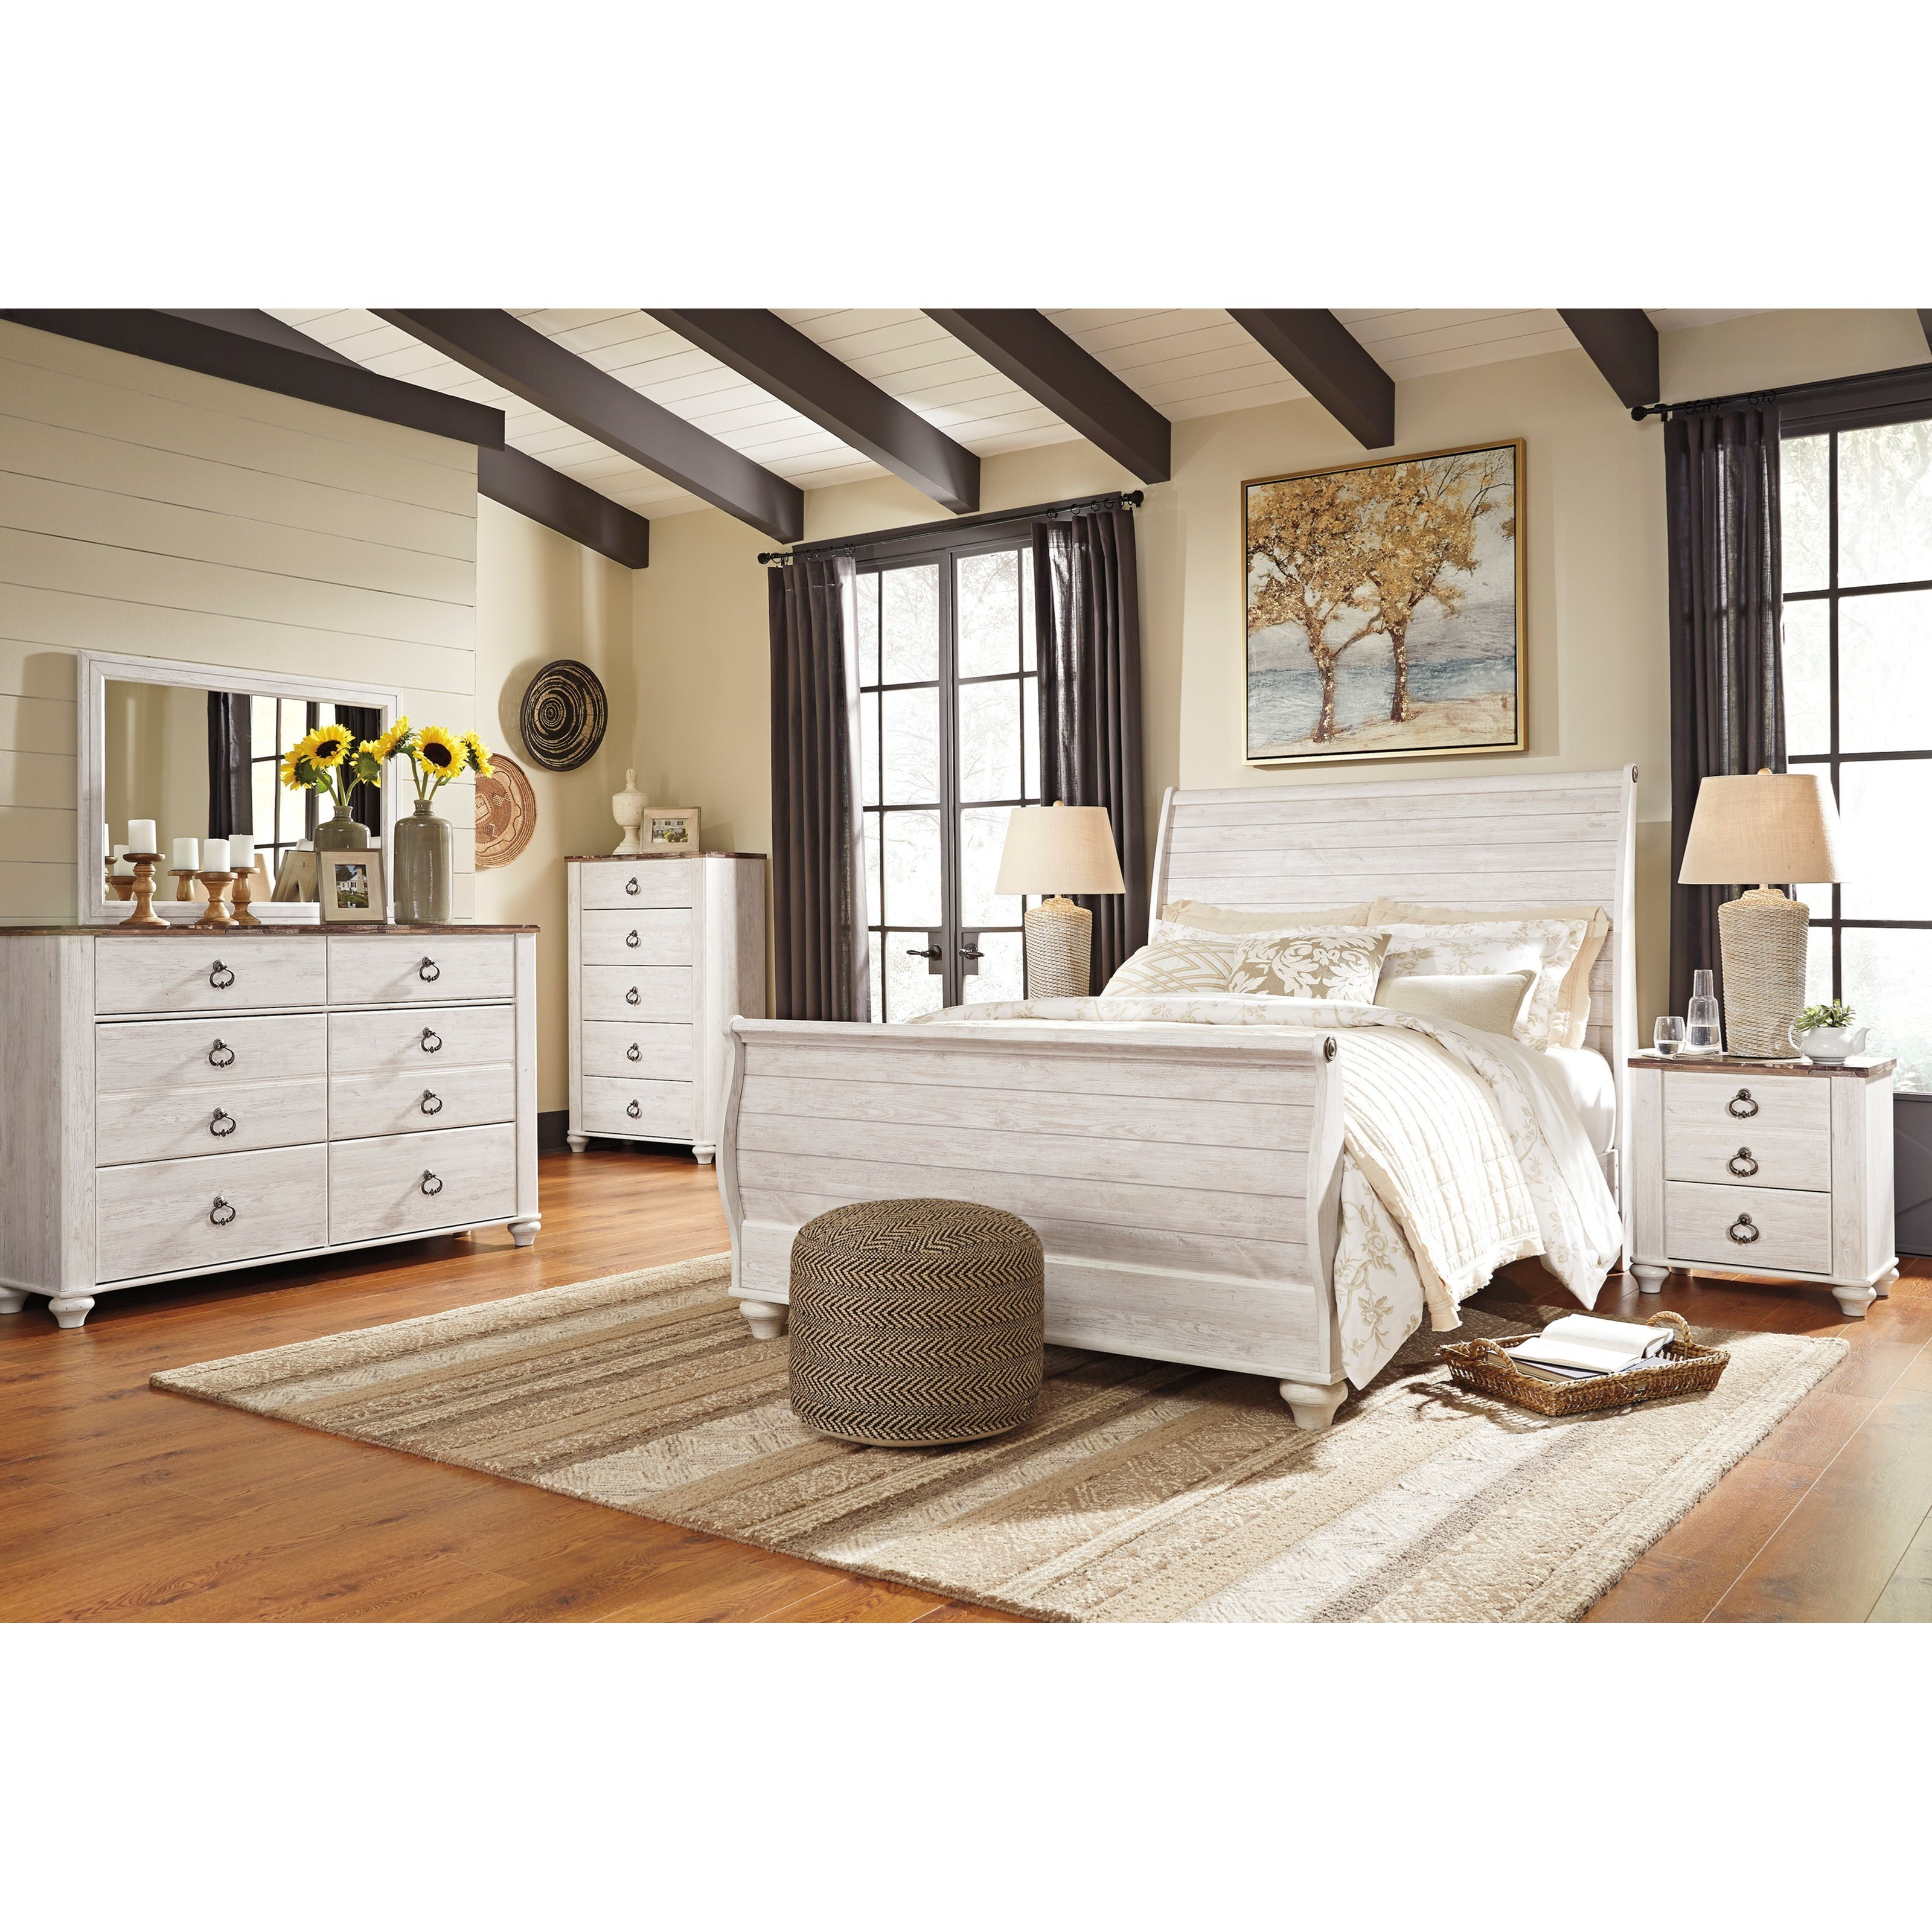 Willowton Queen Bedroom Group by Signature Design by Ashley at Smart Buy Furniture